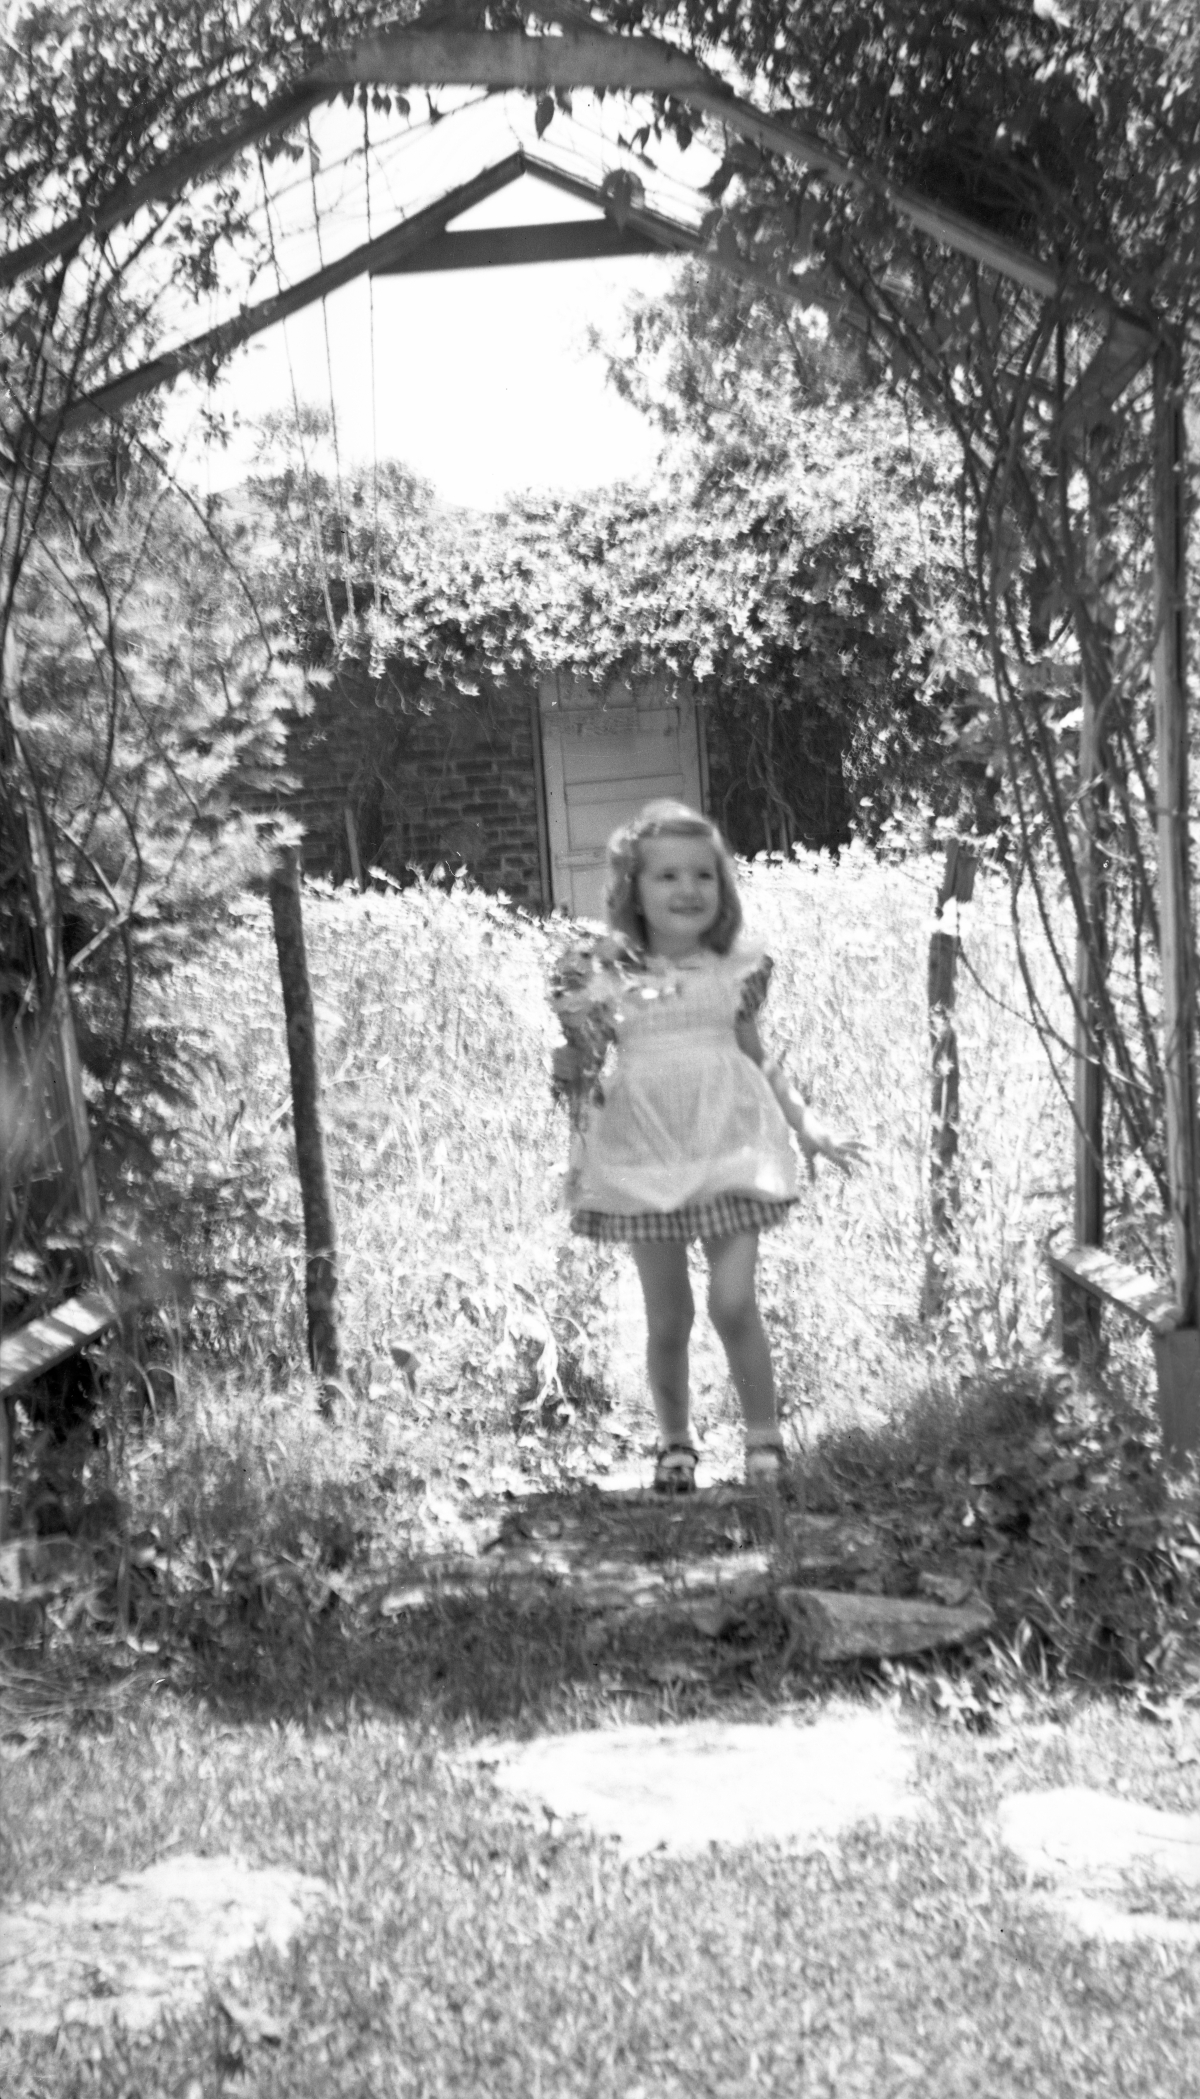 Sandra Dixon with flowers in the garden at her grandmother's house in Tallahassee.